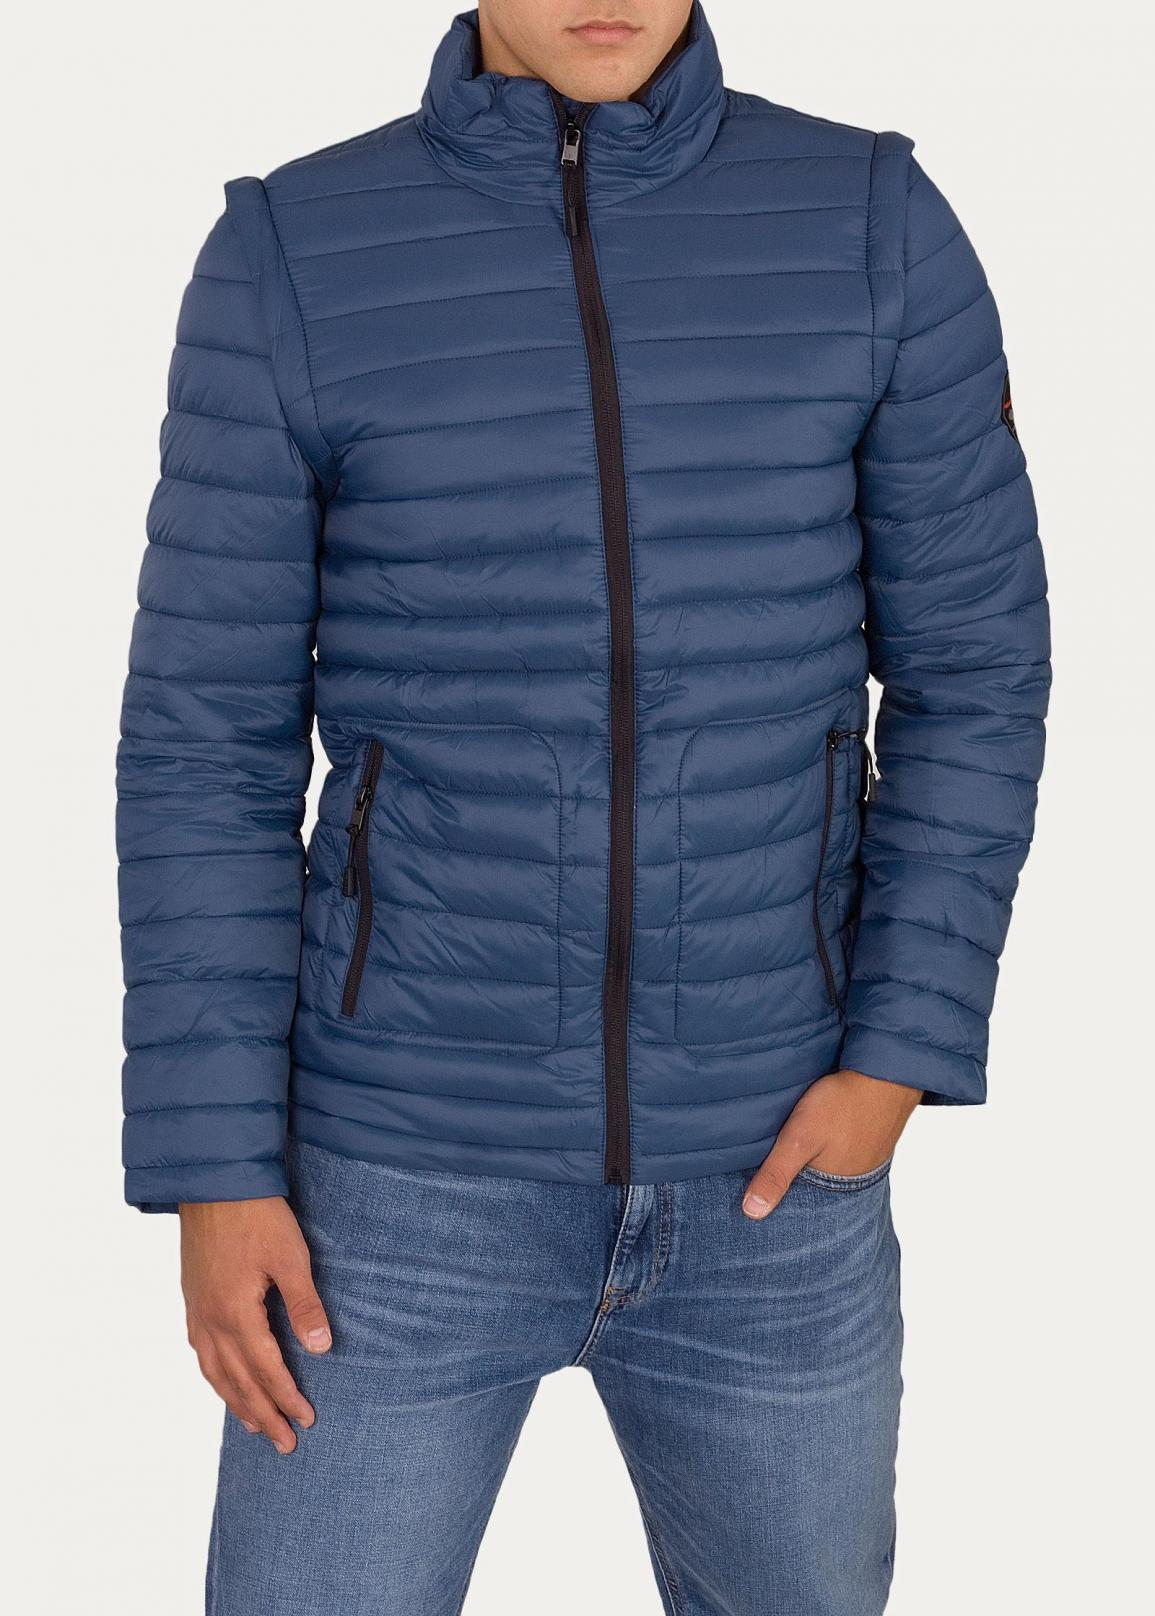 Cross Jeans@ Puffer Jacket - Indigo (005)